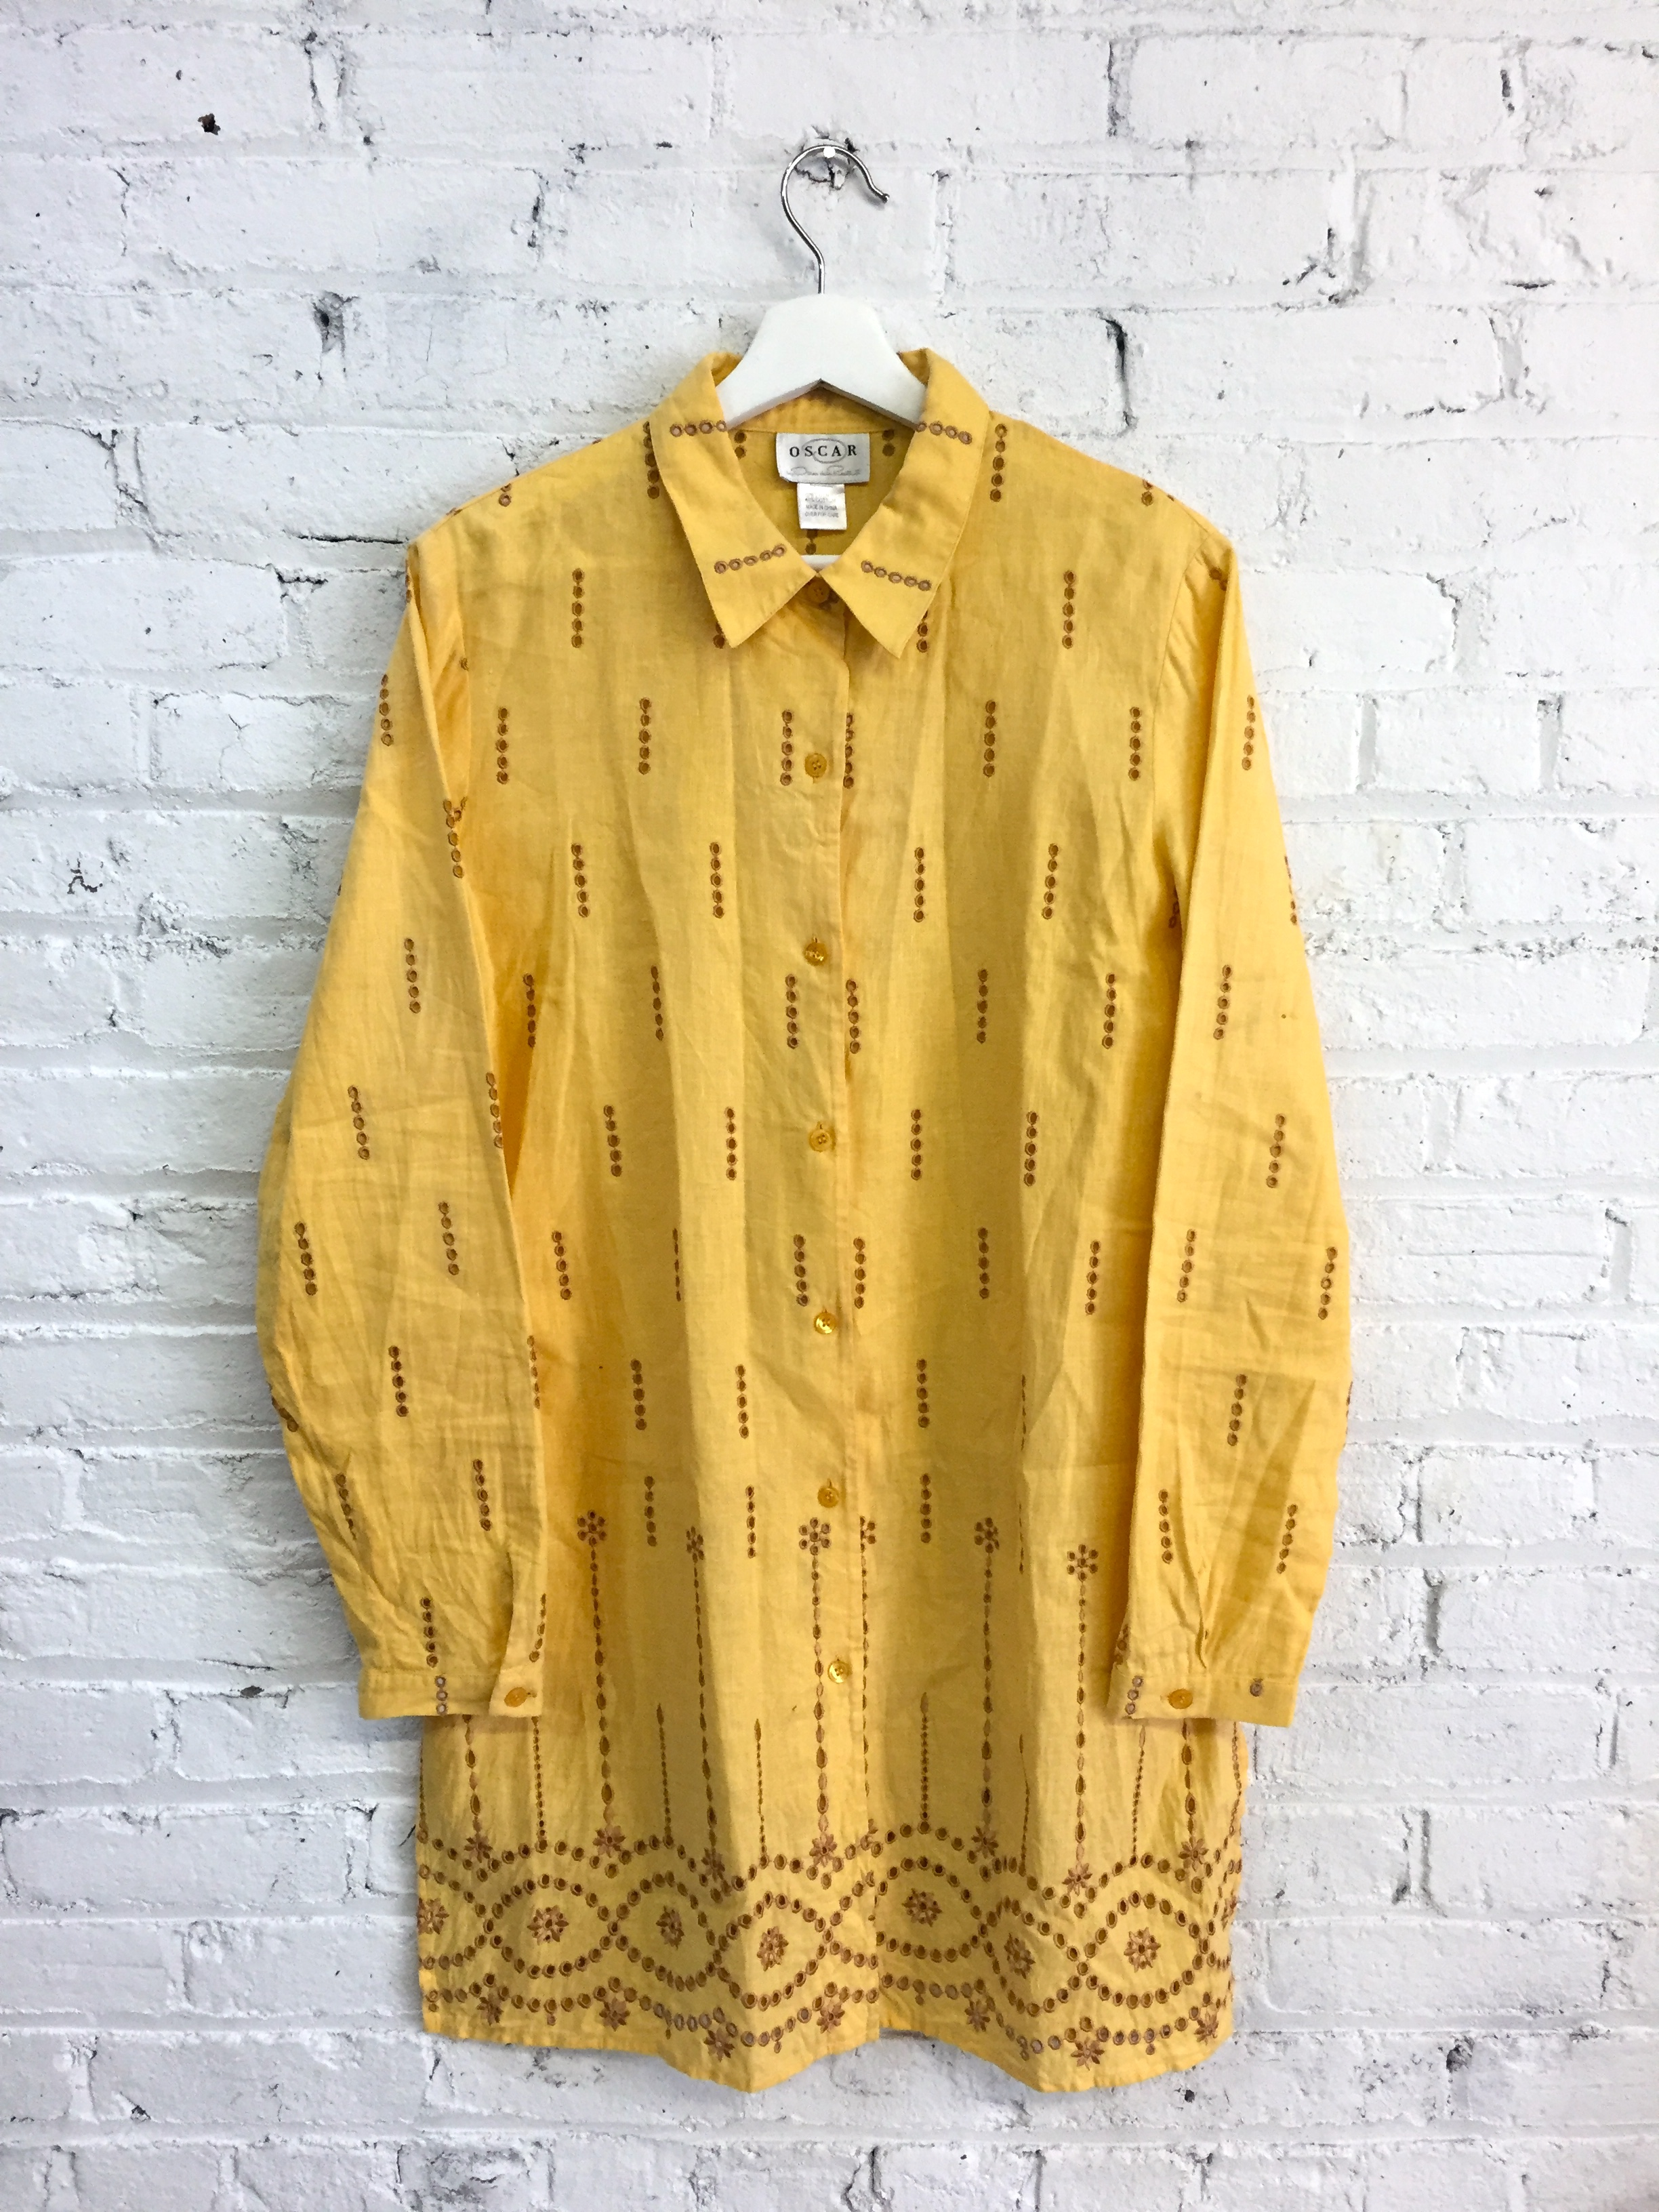 Vintage Oscar De La Renta Mustard Yellow Shirt Dress Cotton Linen Eyelet Dress Indian Inspired Yellow Dress Dusty Rose Vintage